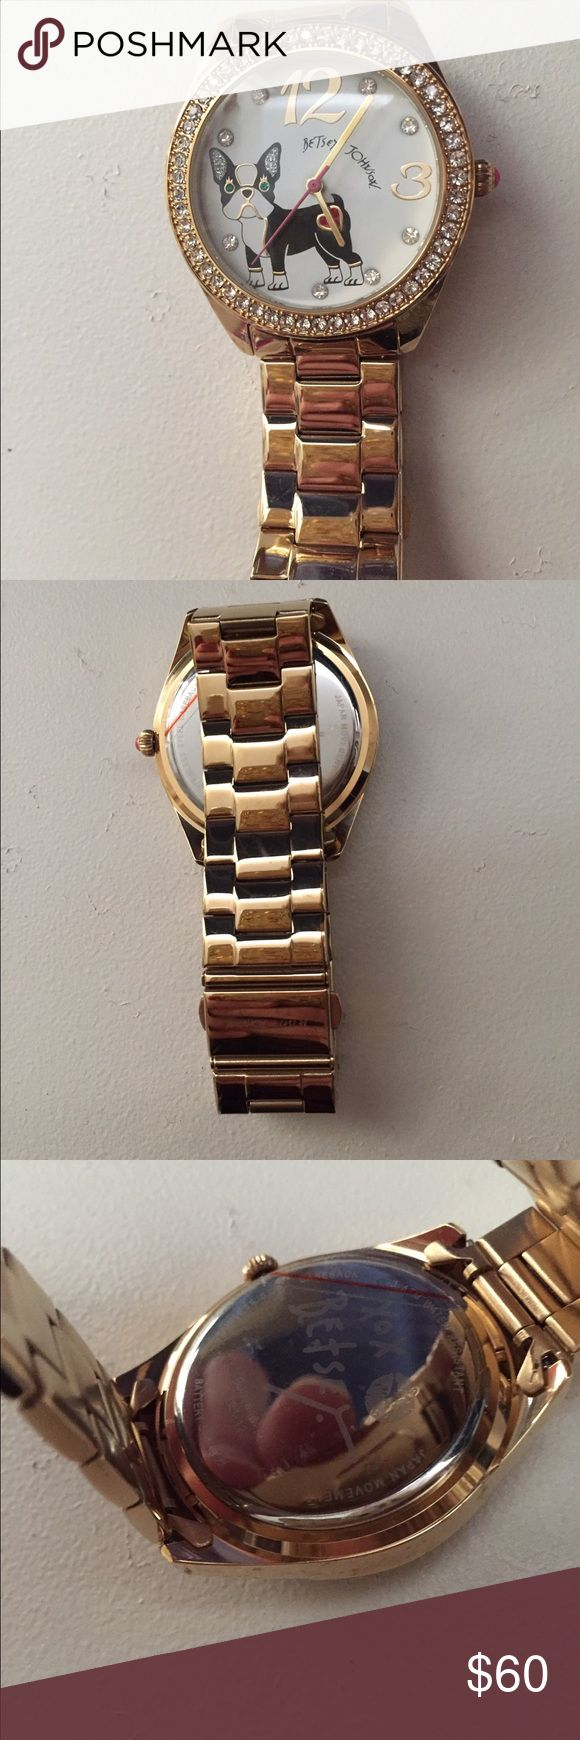 Betsey Johnson Watch Betsey Johnson Bulldog watch. No scratches. Just needs a new battery which is quick fix. Offers considered. Betsey Johnson Jewelry